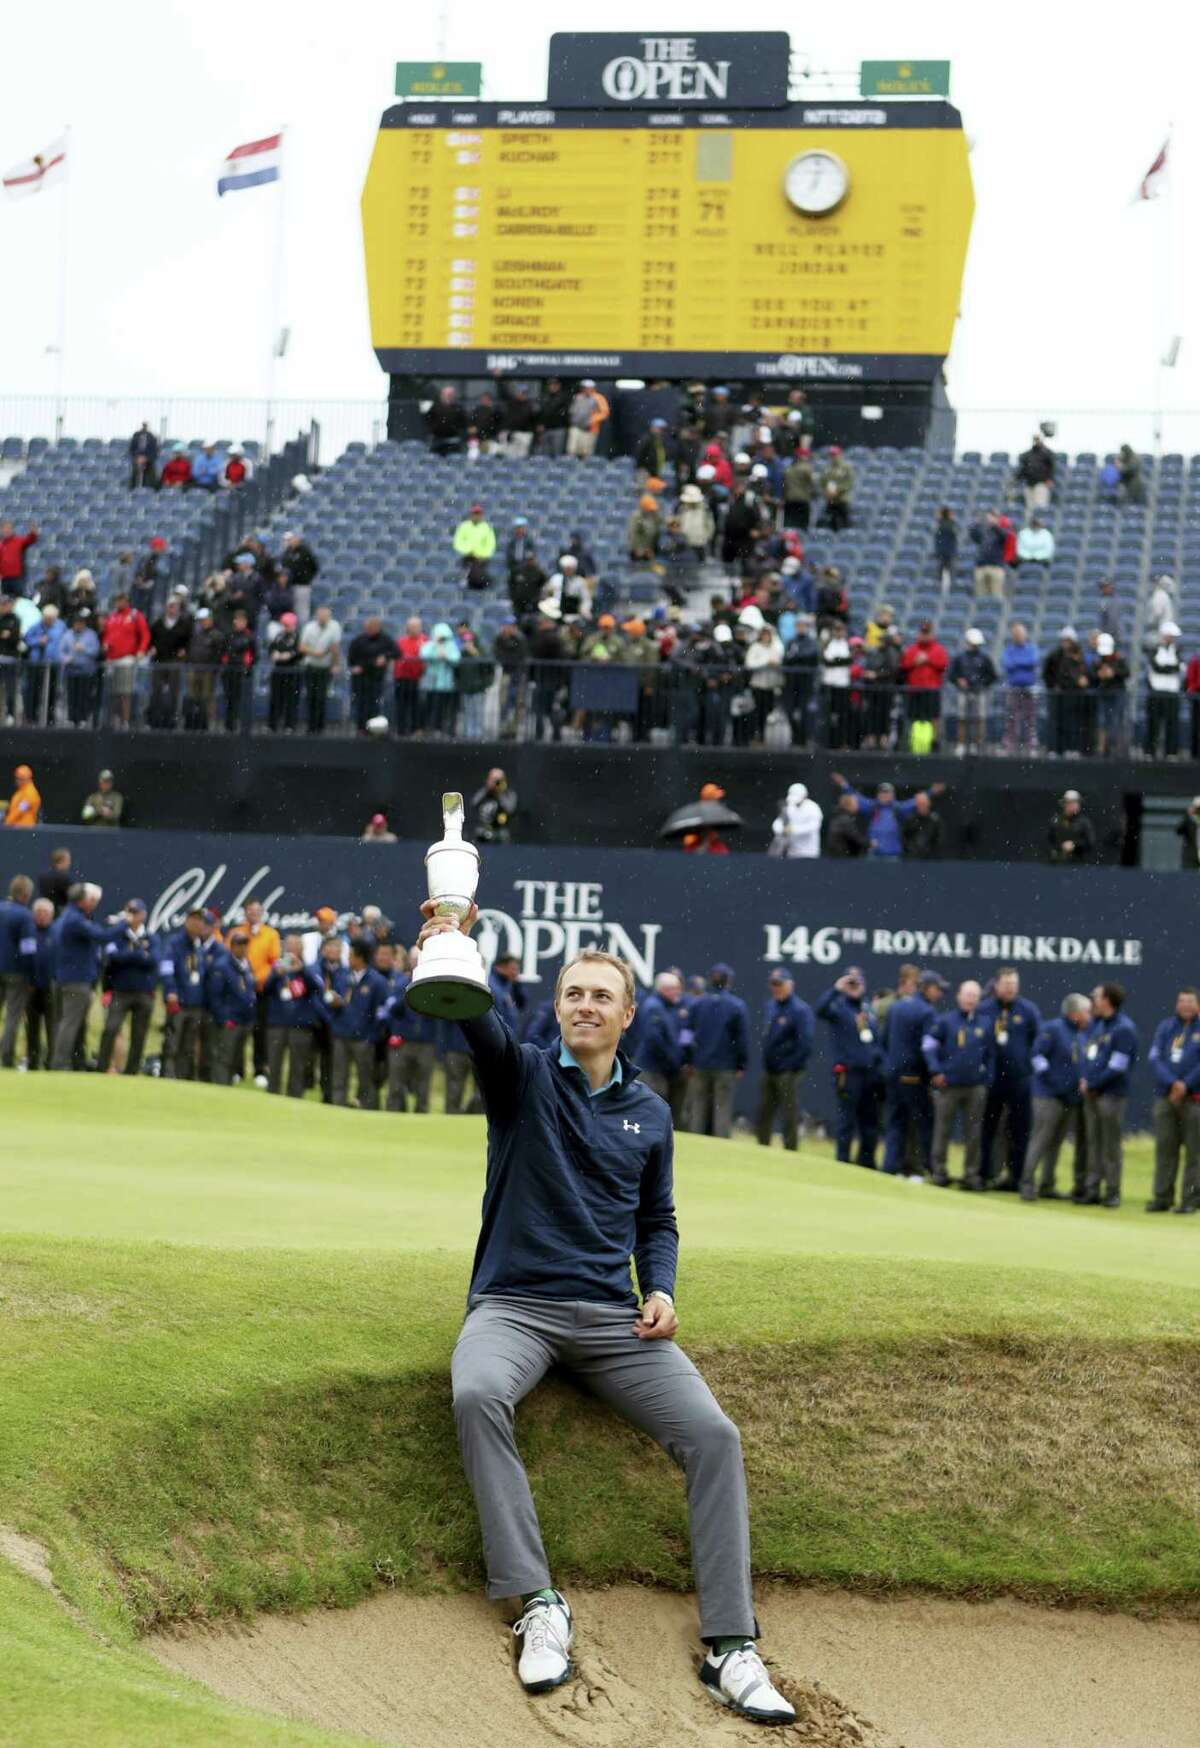 Jordan Spieth holds the claret jug after winning the British Open at Royal Birkdale on Sunday.